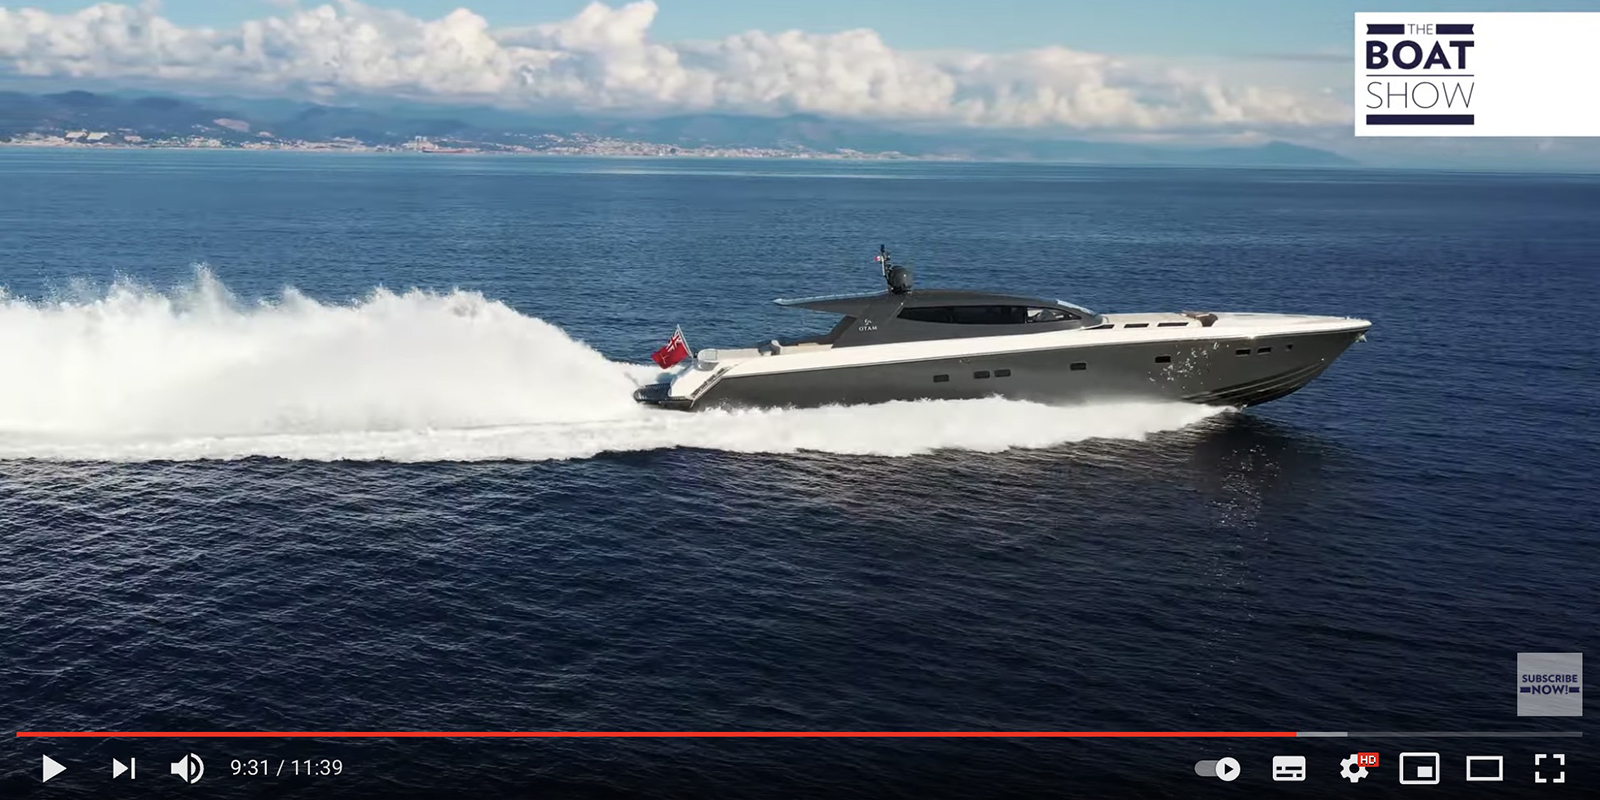 NEW FEATURES - OTAM 80 HT - Performance Motor Yacht Exclusive Review - The Boat Show